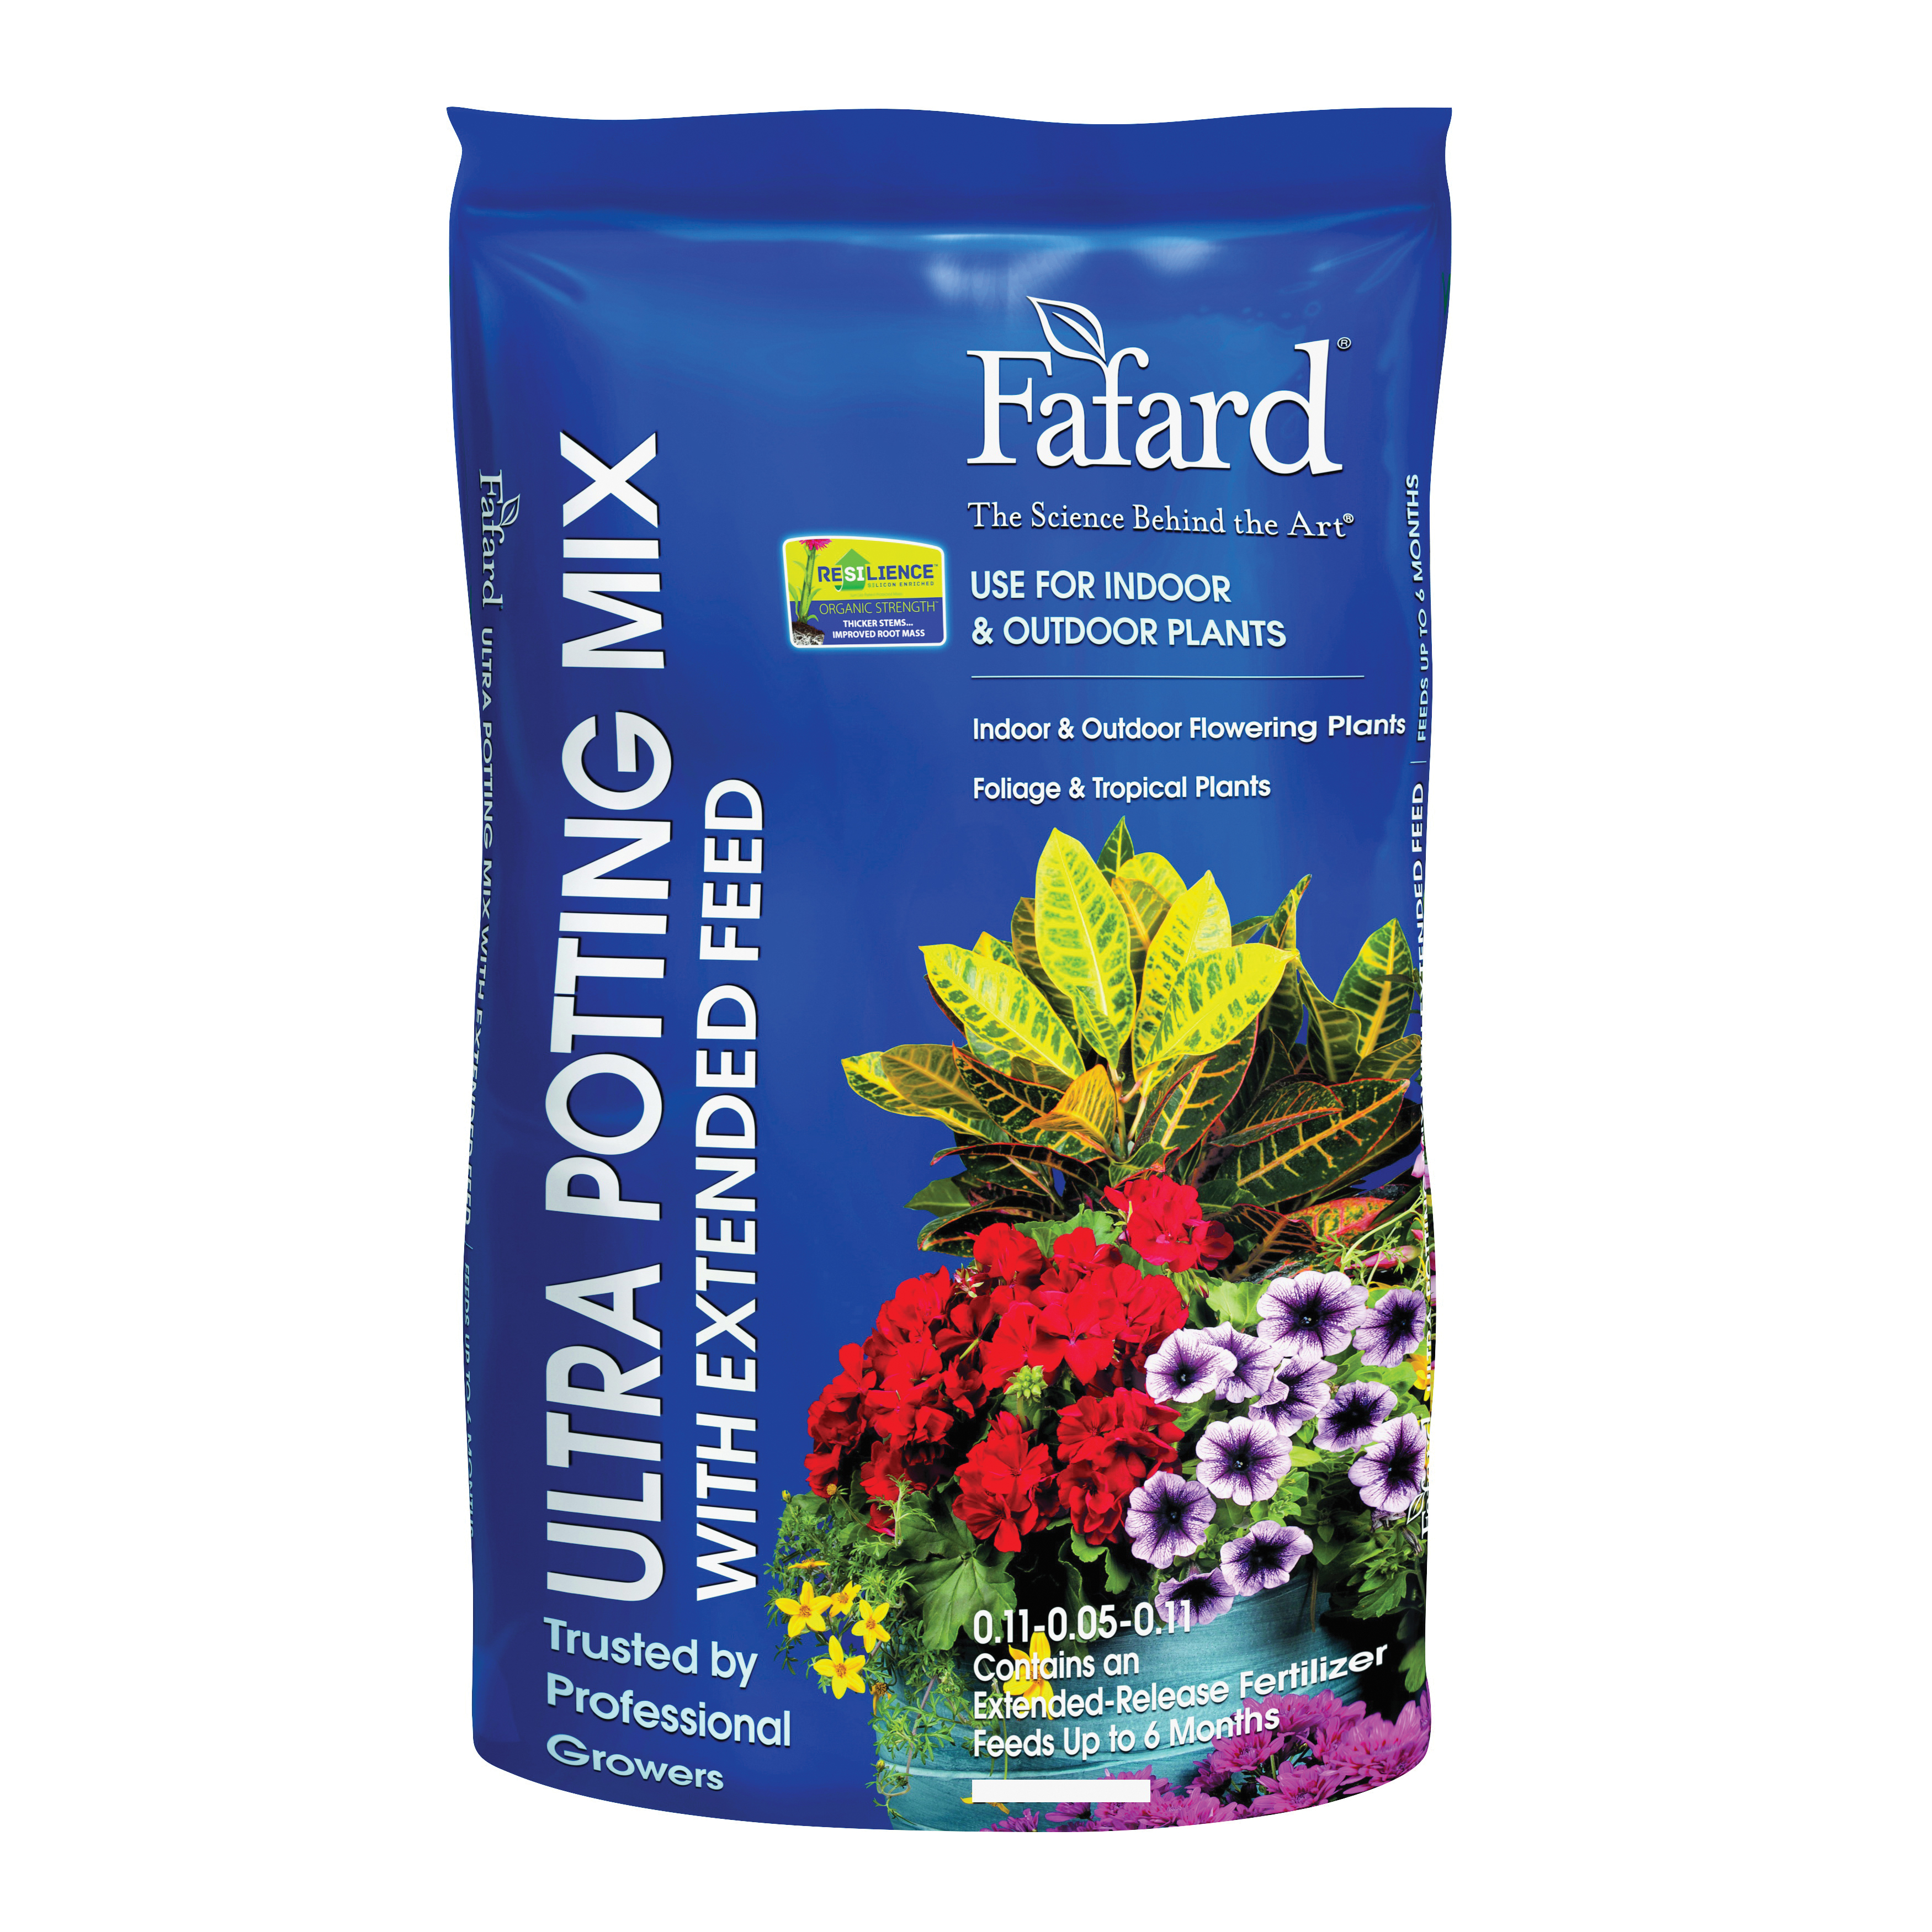 Picture of sun gro Fafard 4005101 Ultra Potting Mix with Extended Feed, 1 cu-ft Coverage Area, Flecks, Brown/White, 100 Package